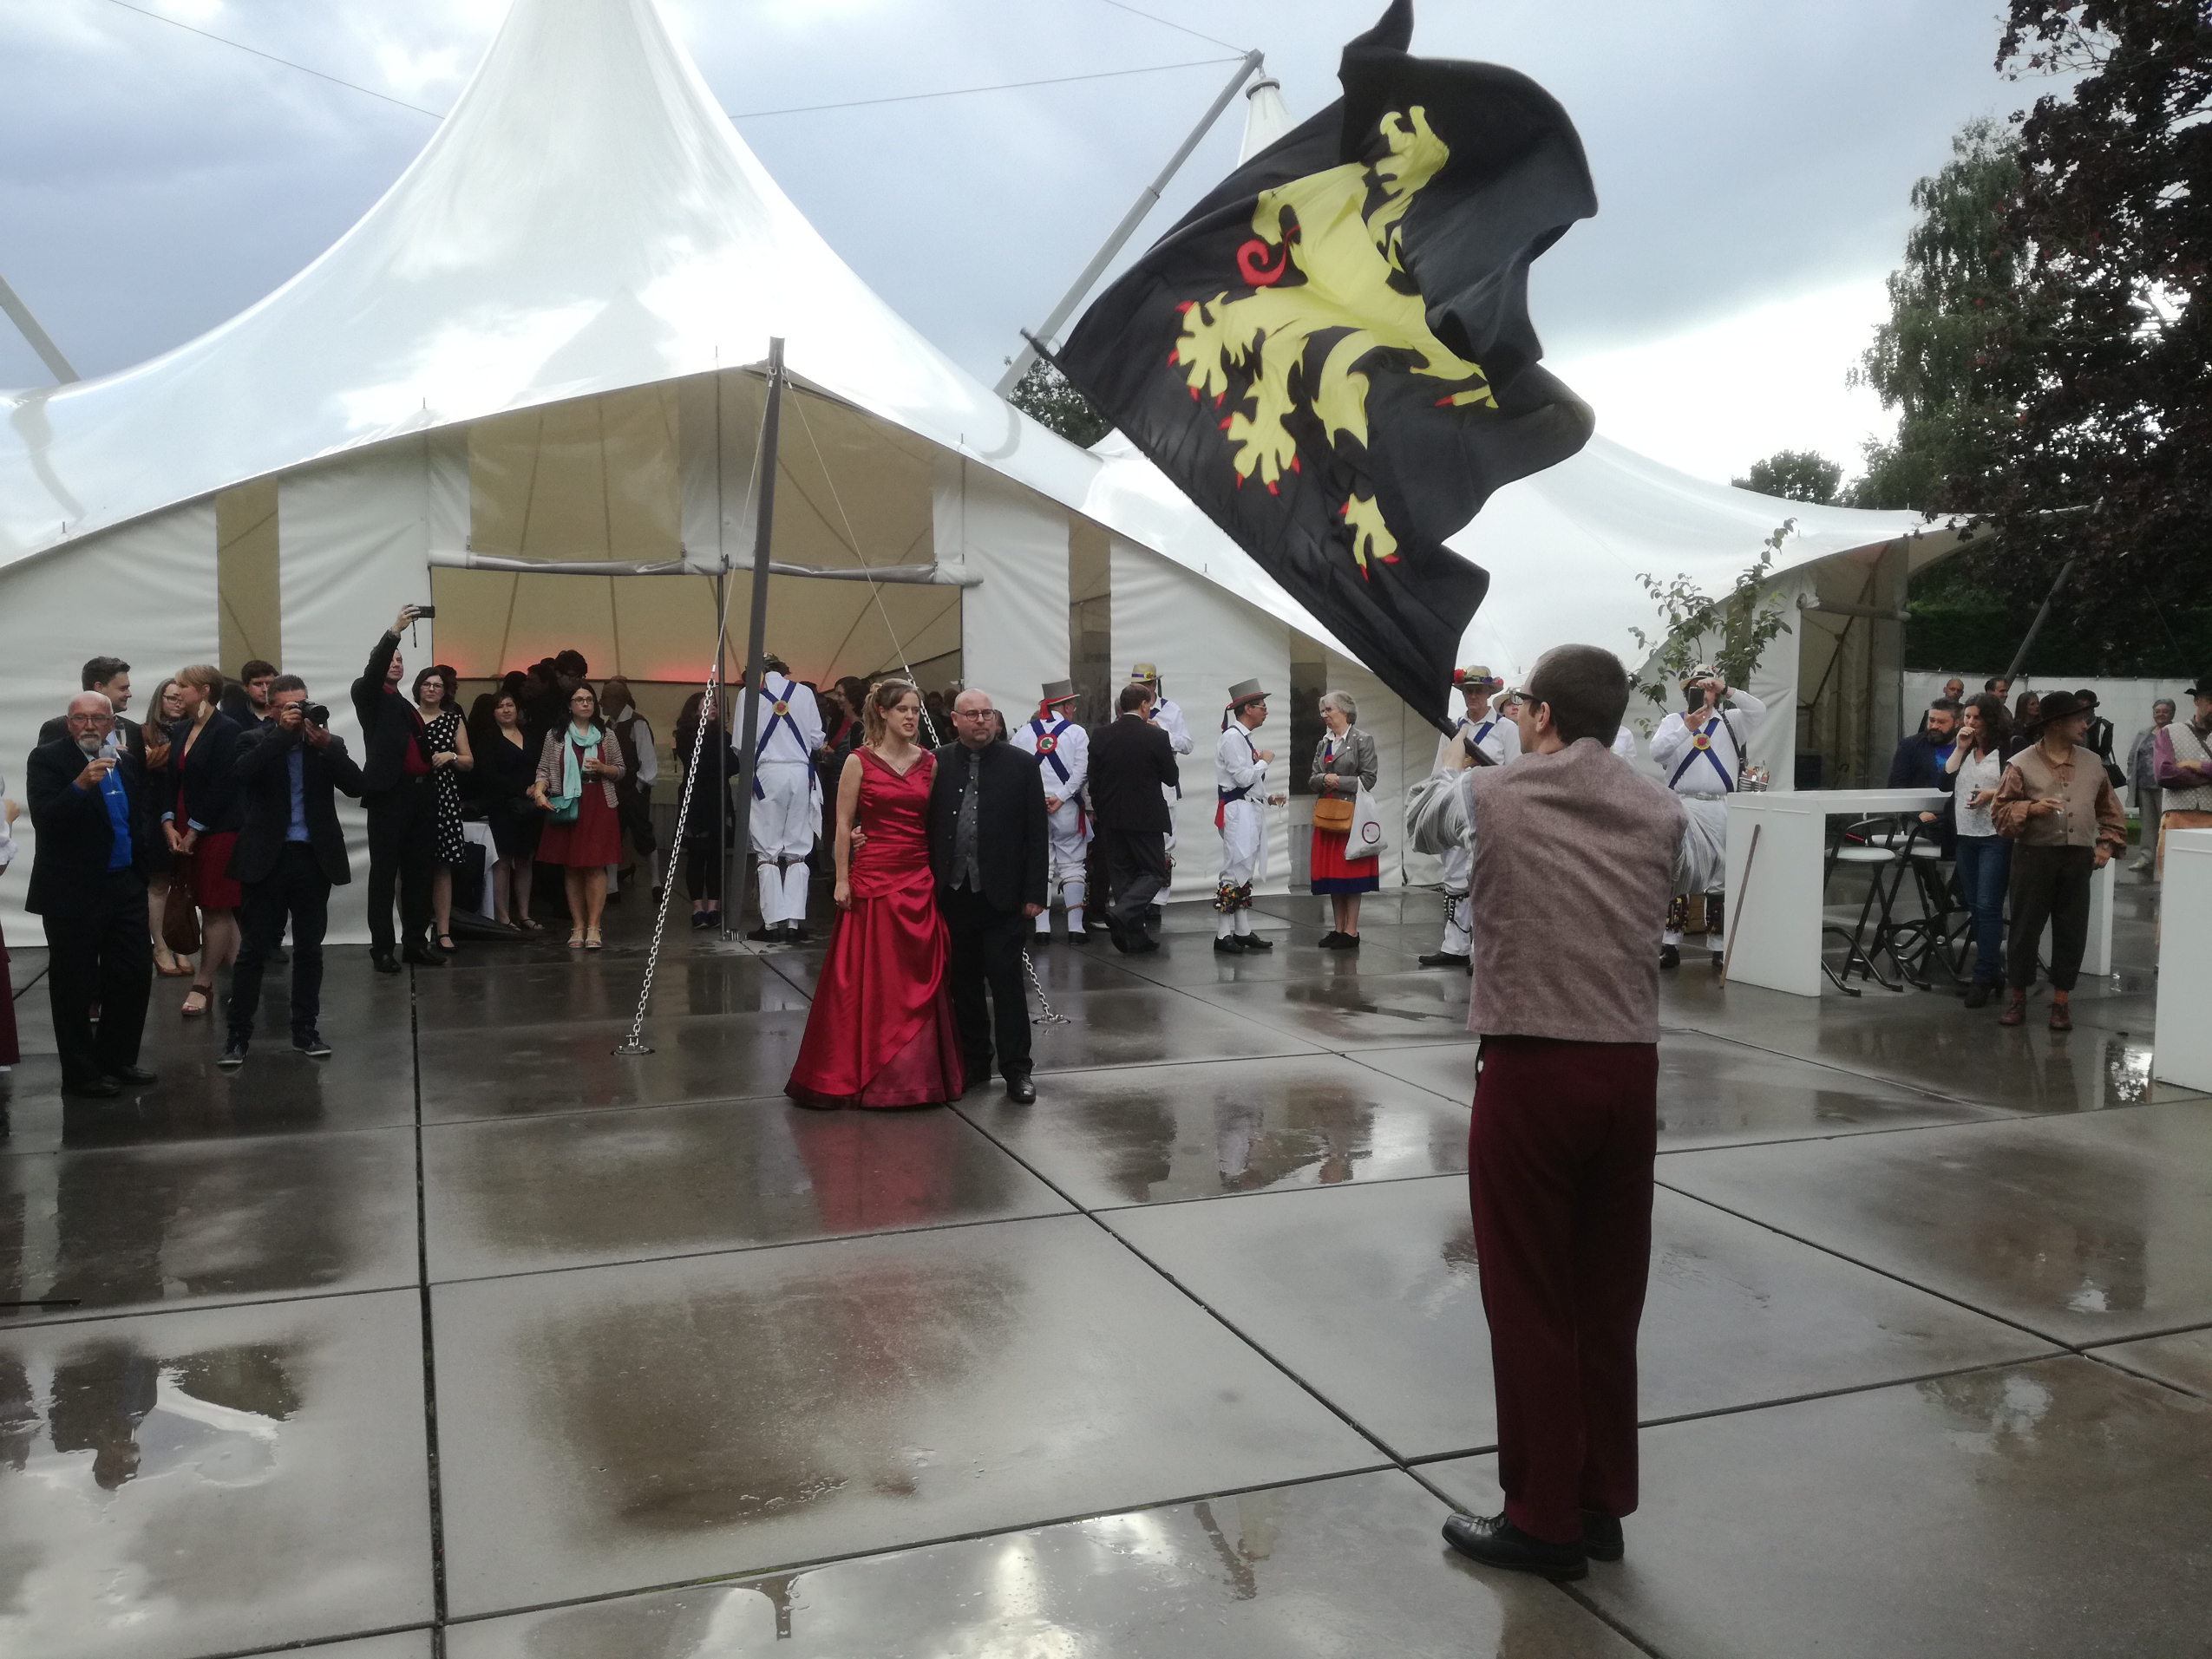 Lieven and Maria's Wedding - Flag Waving for the Happy Couple